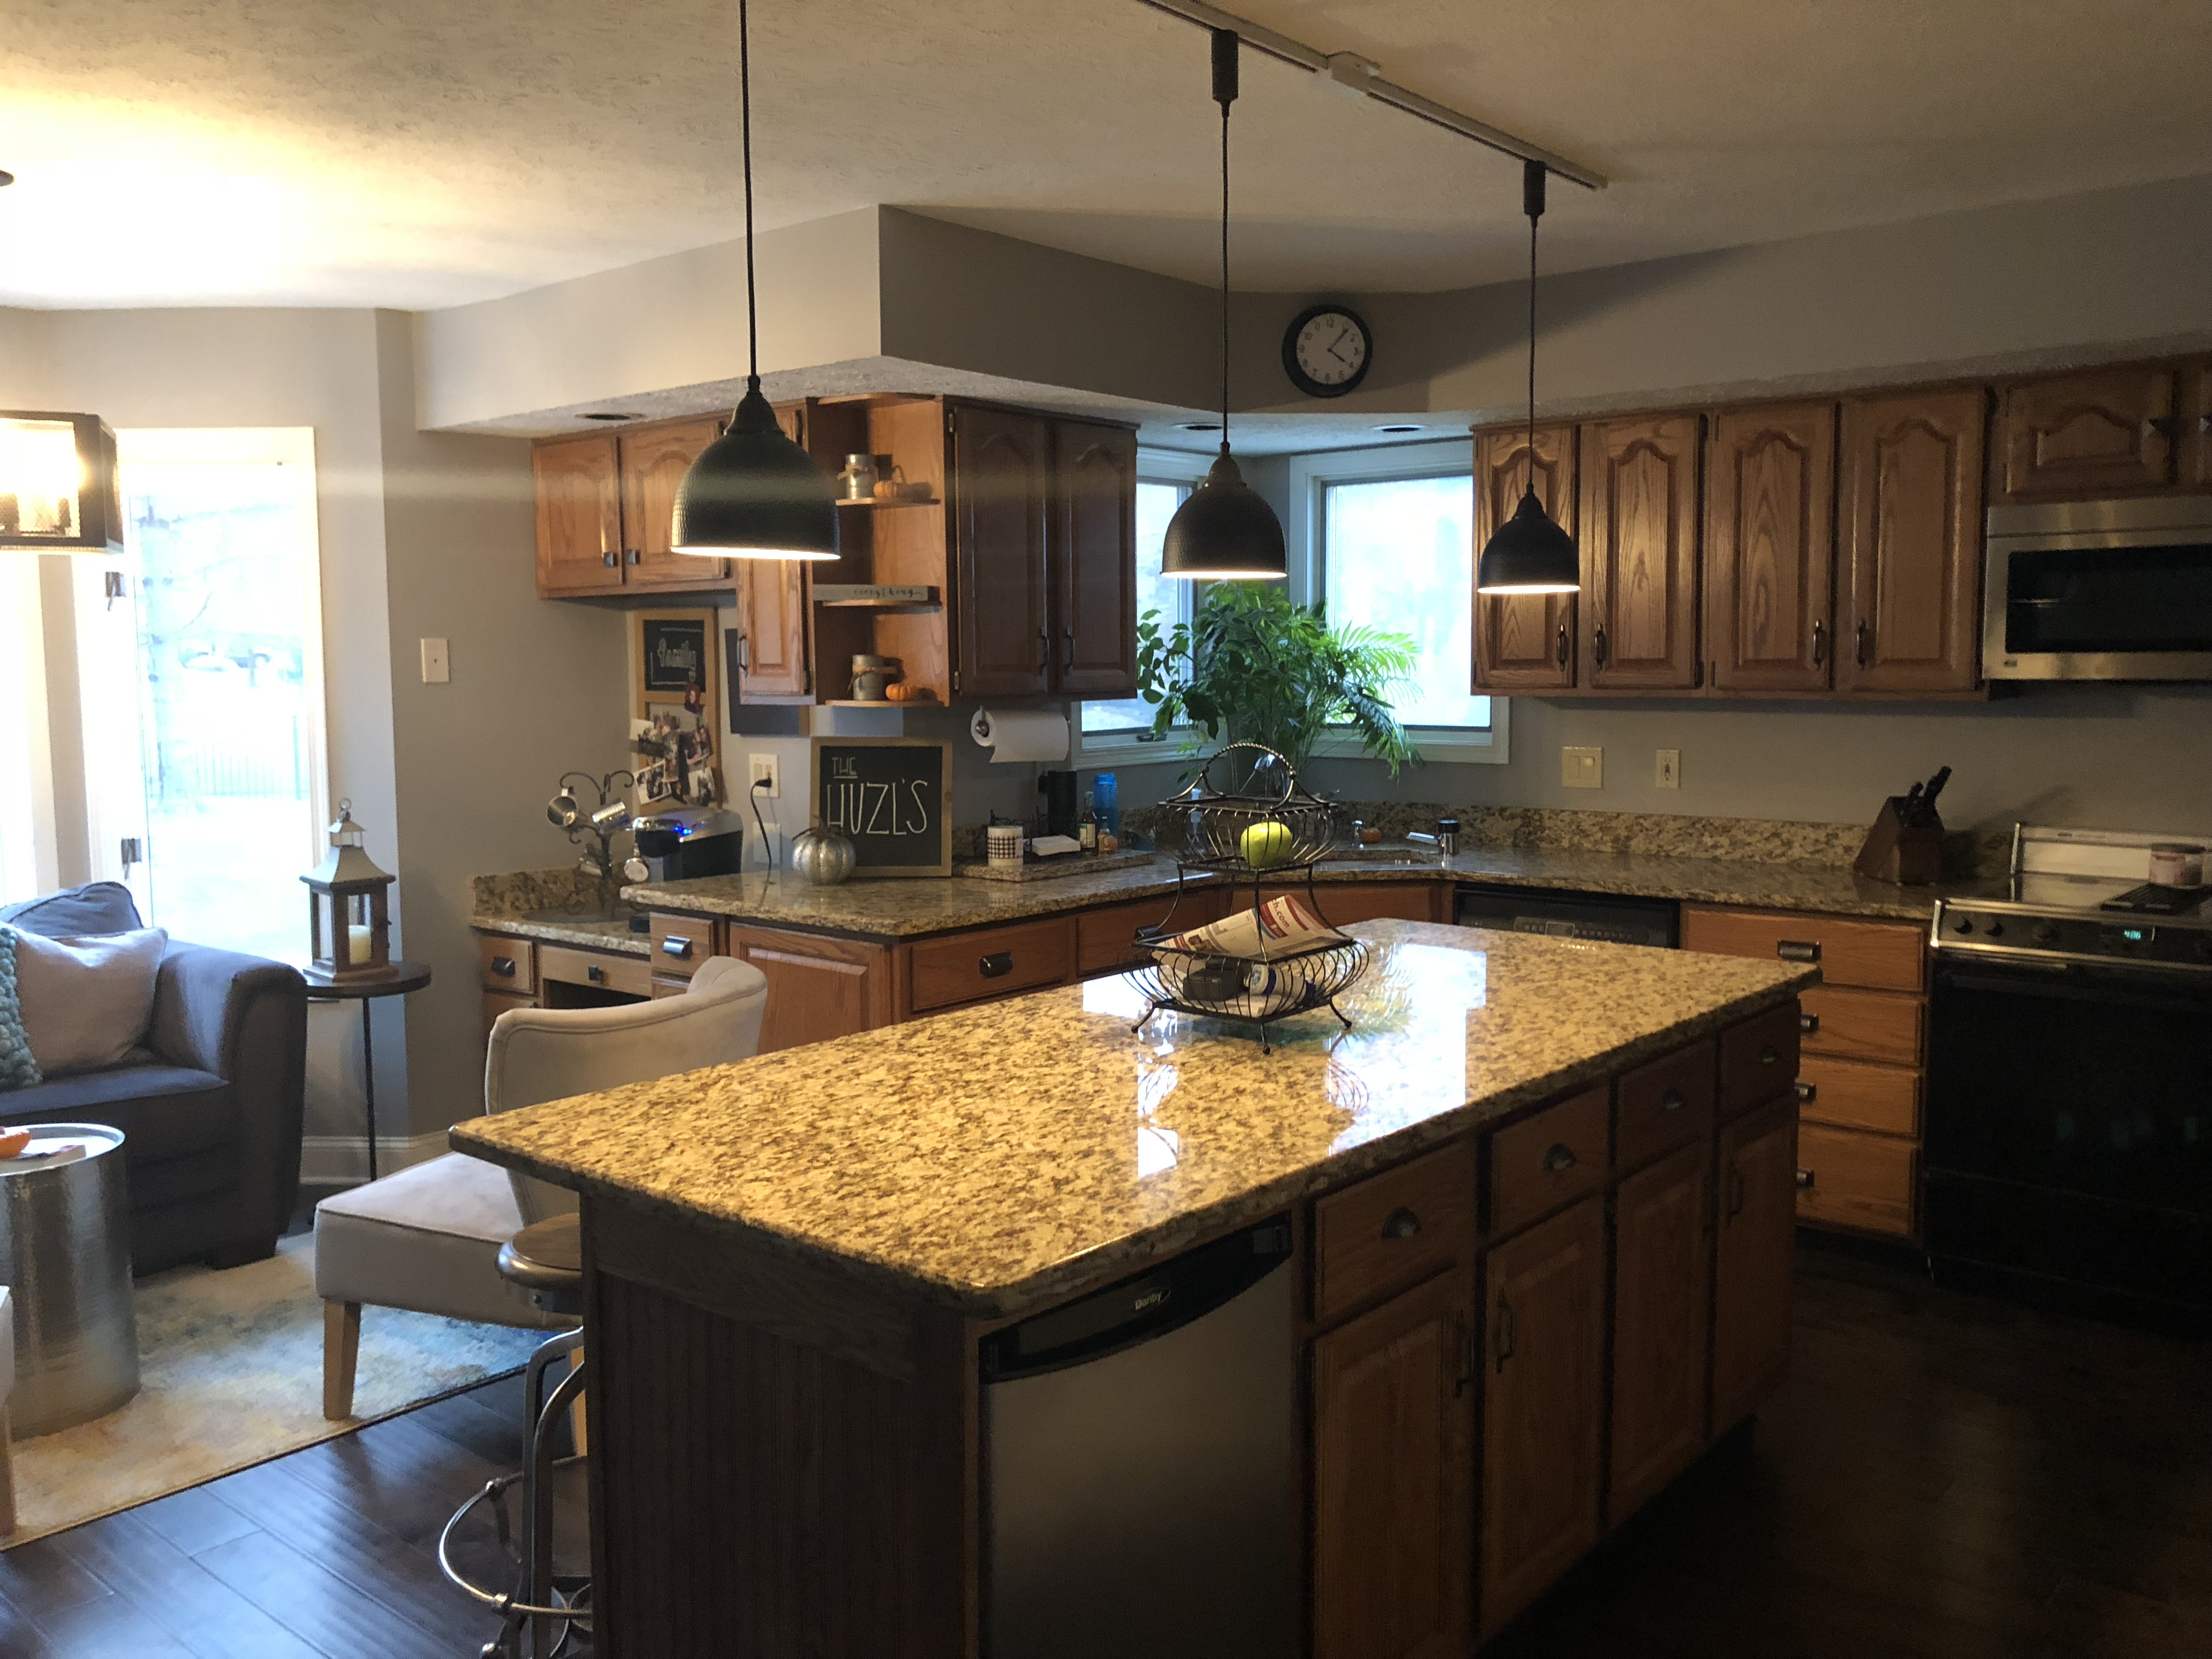 Broadview Heights Kitchen Before